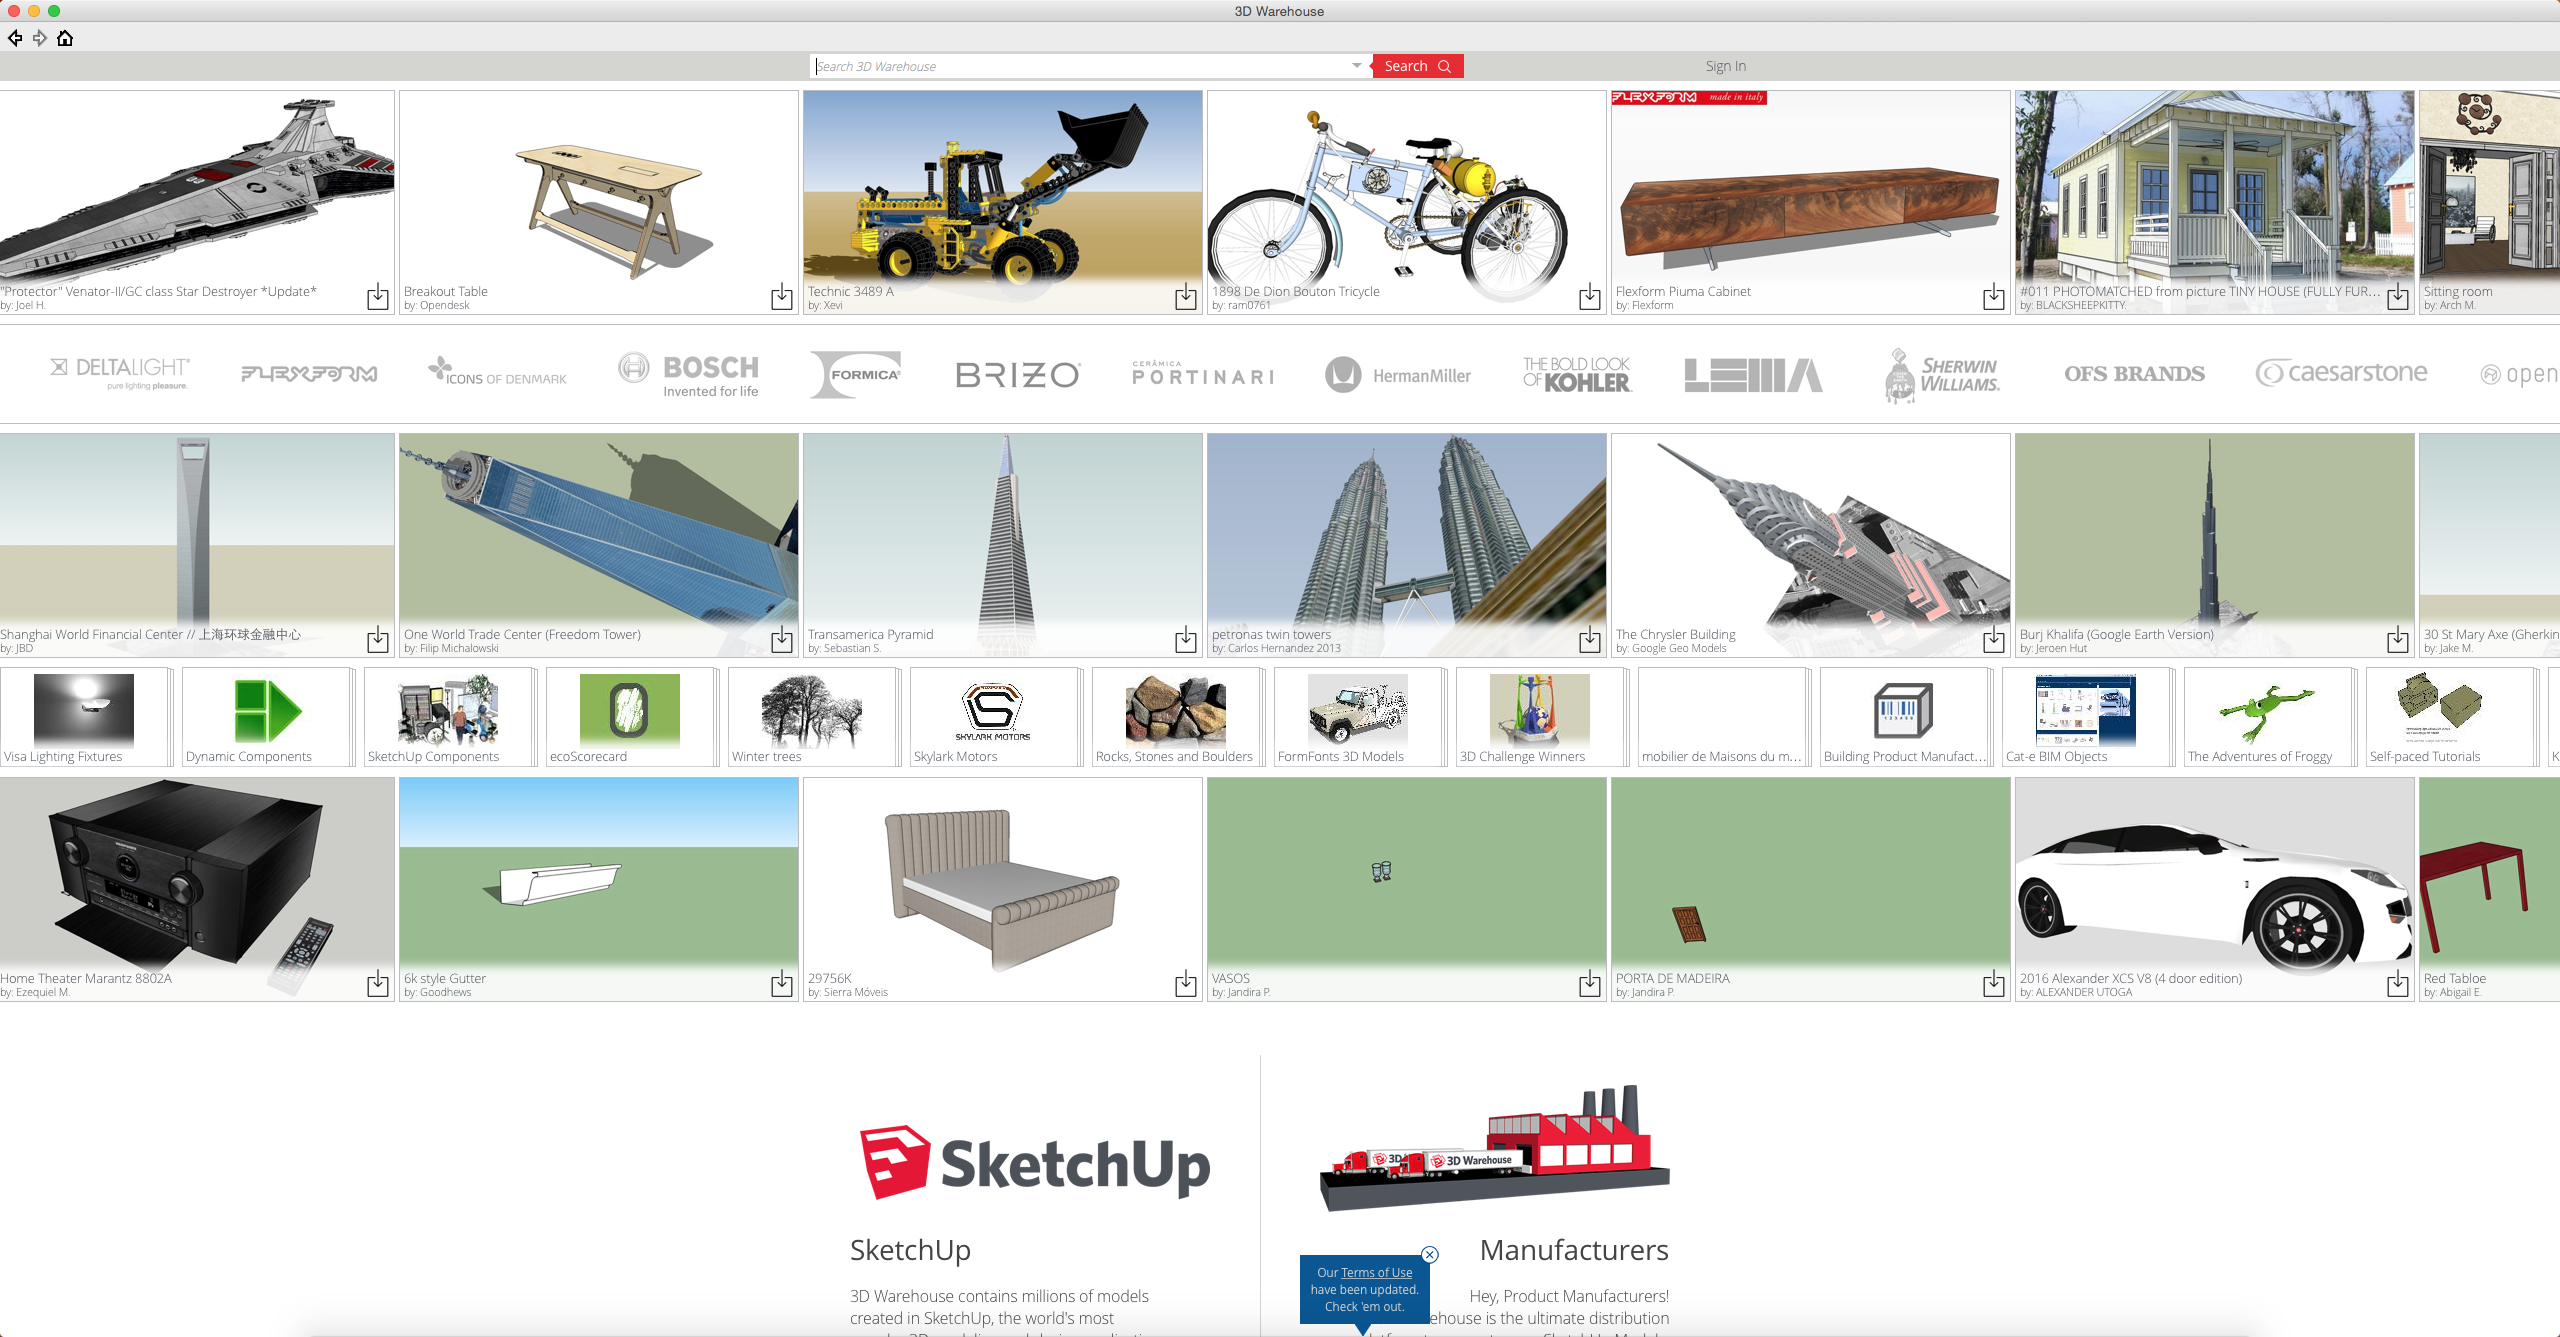 Download or share SketchUp models in the 3D Warehouse